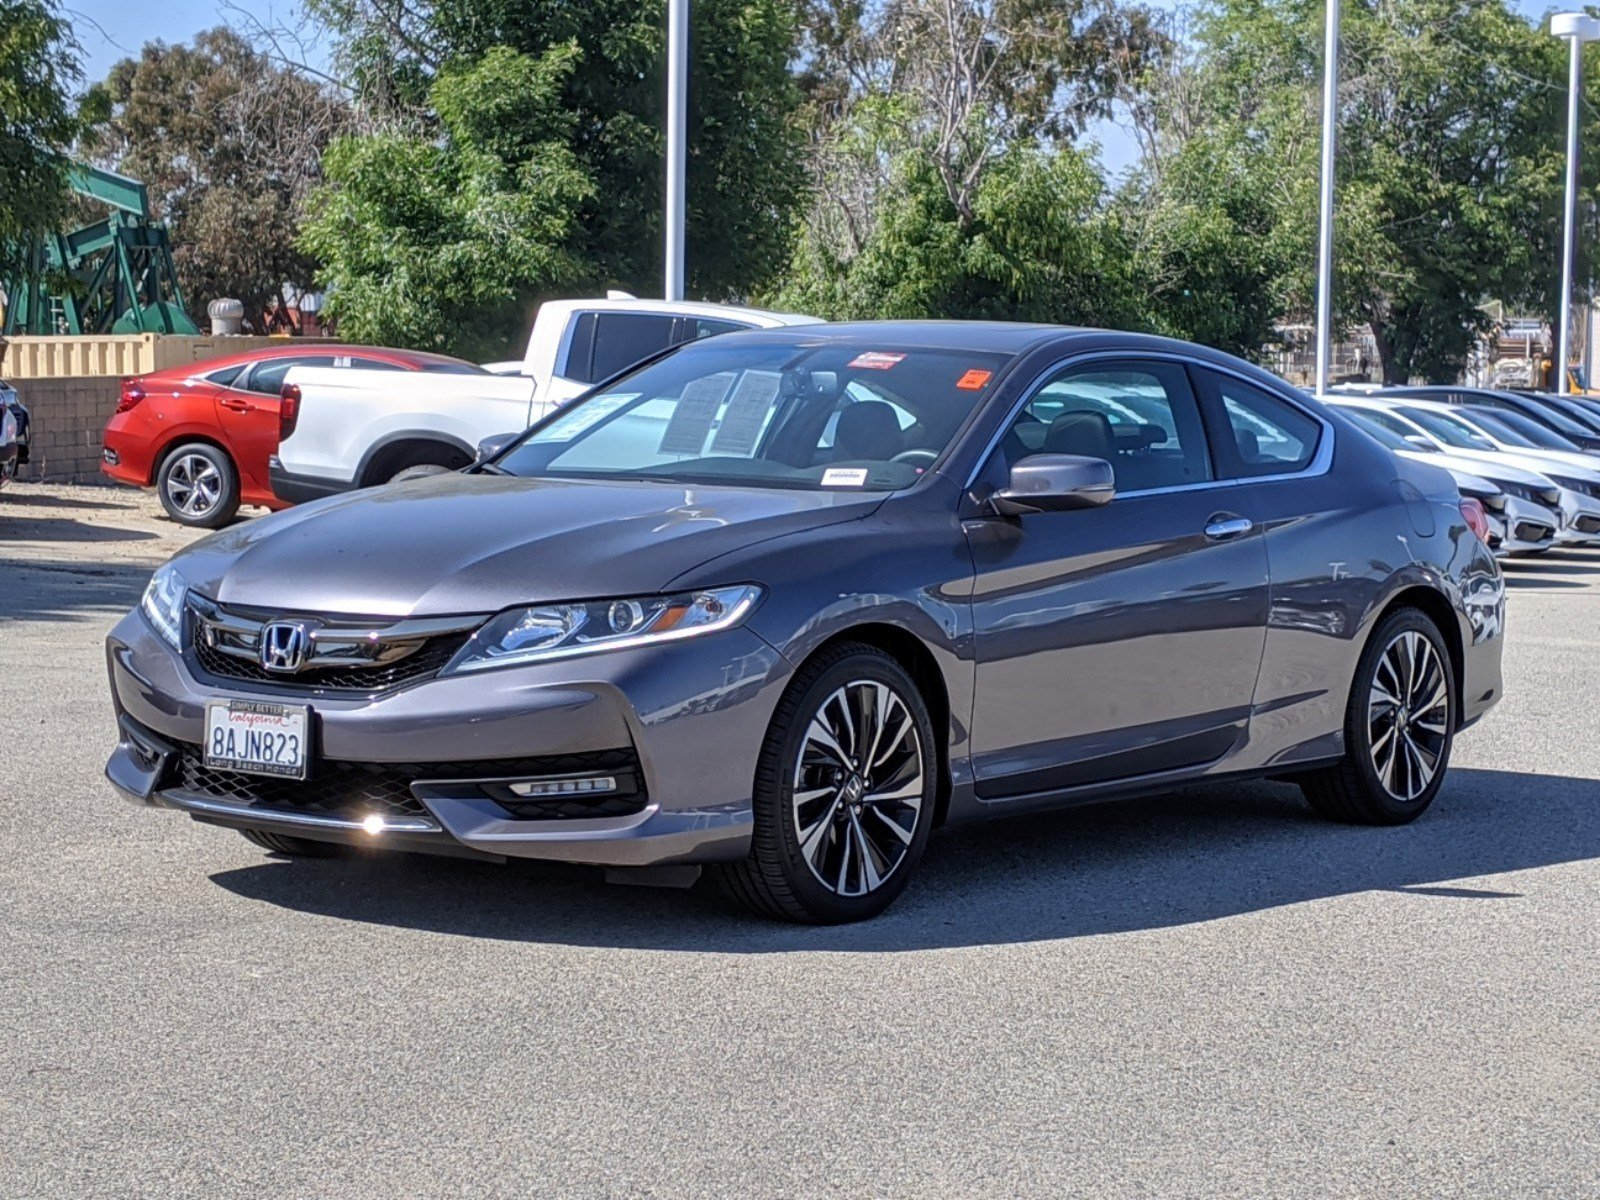 accord honda coupe v6 ex certified 2dr fwd owned pre vehicle